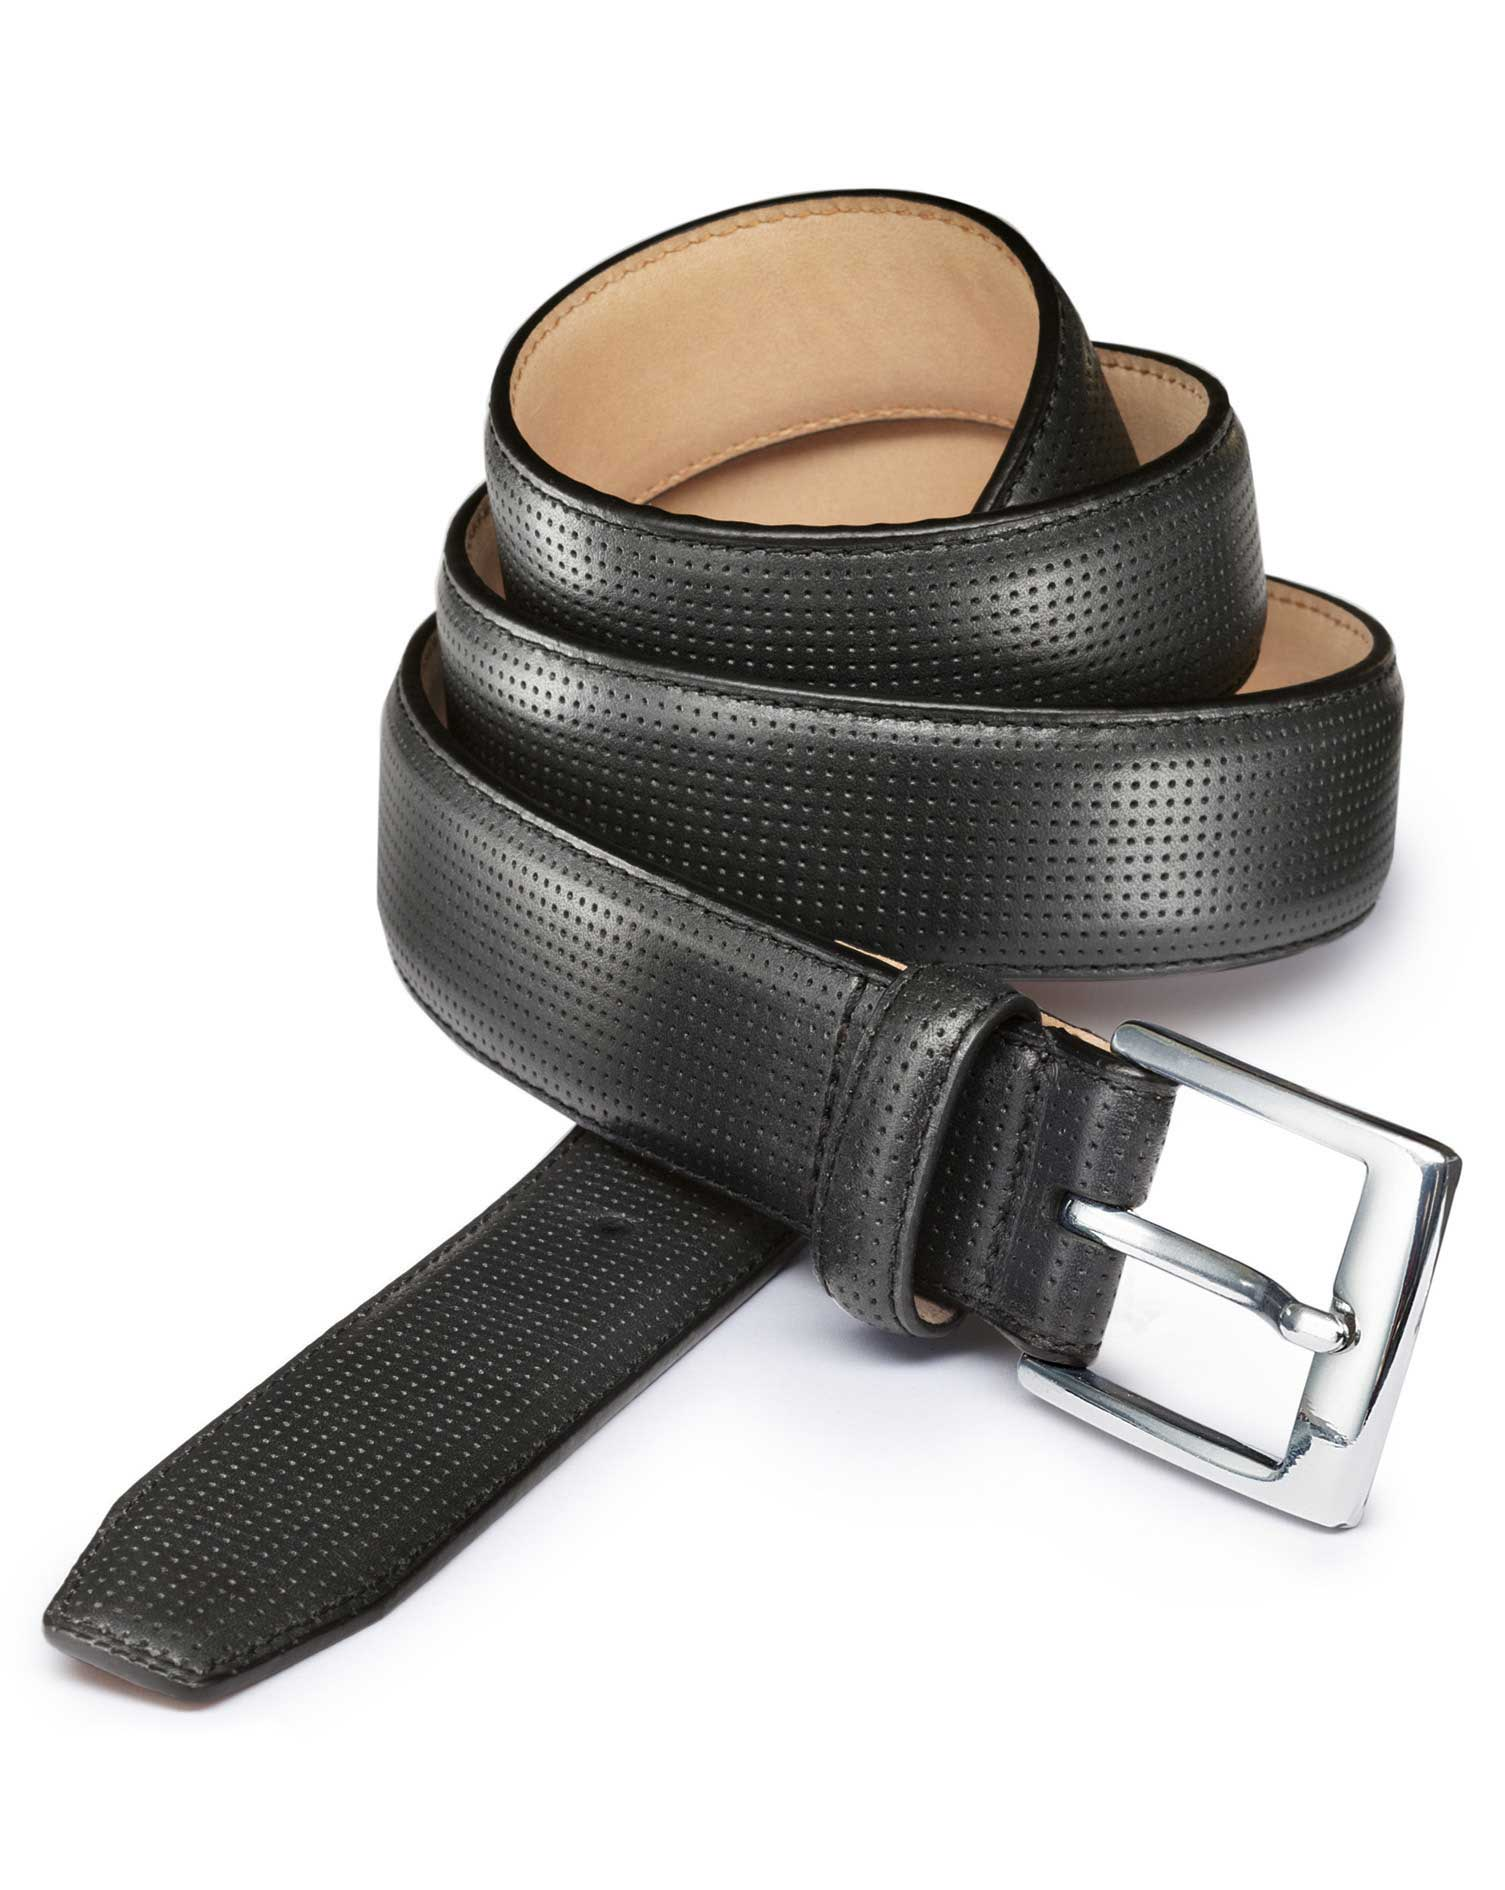 Black Perforated Leather Belt Size 34-36 by Charles Tyrwhitt